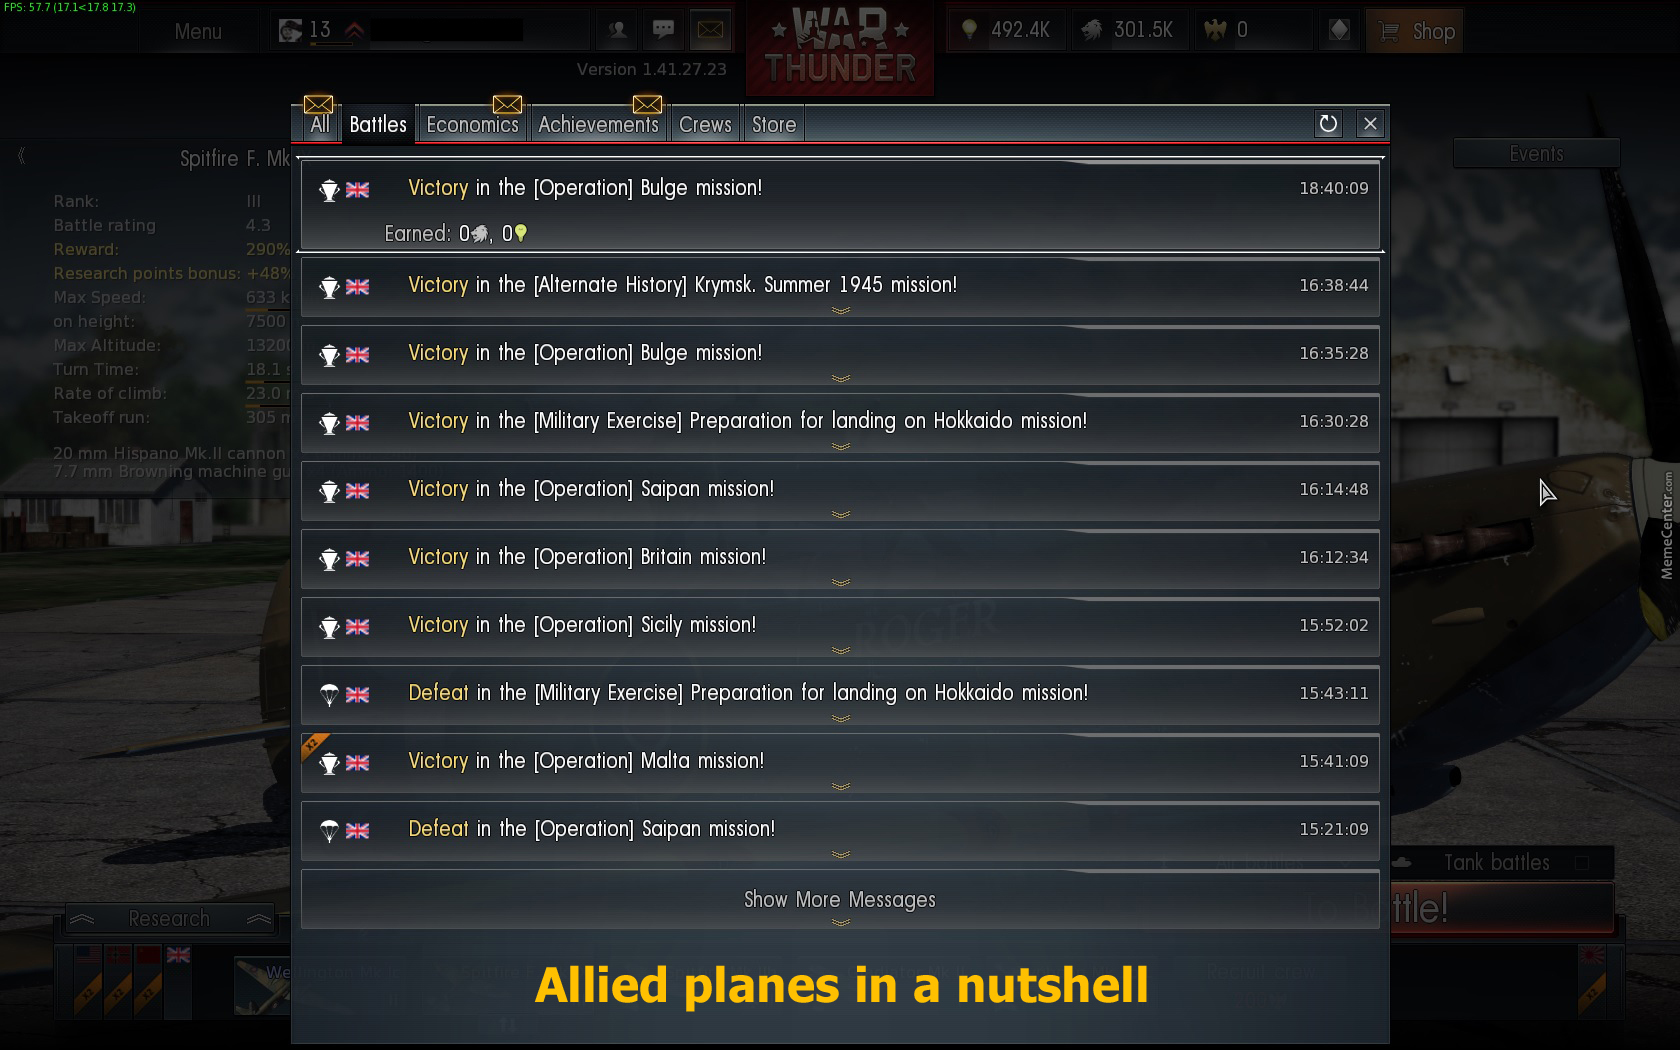 War thunder matchmaking tiers